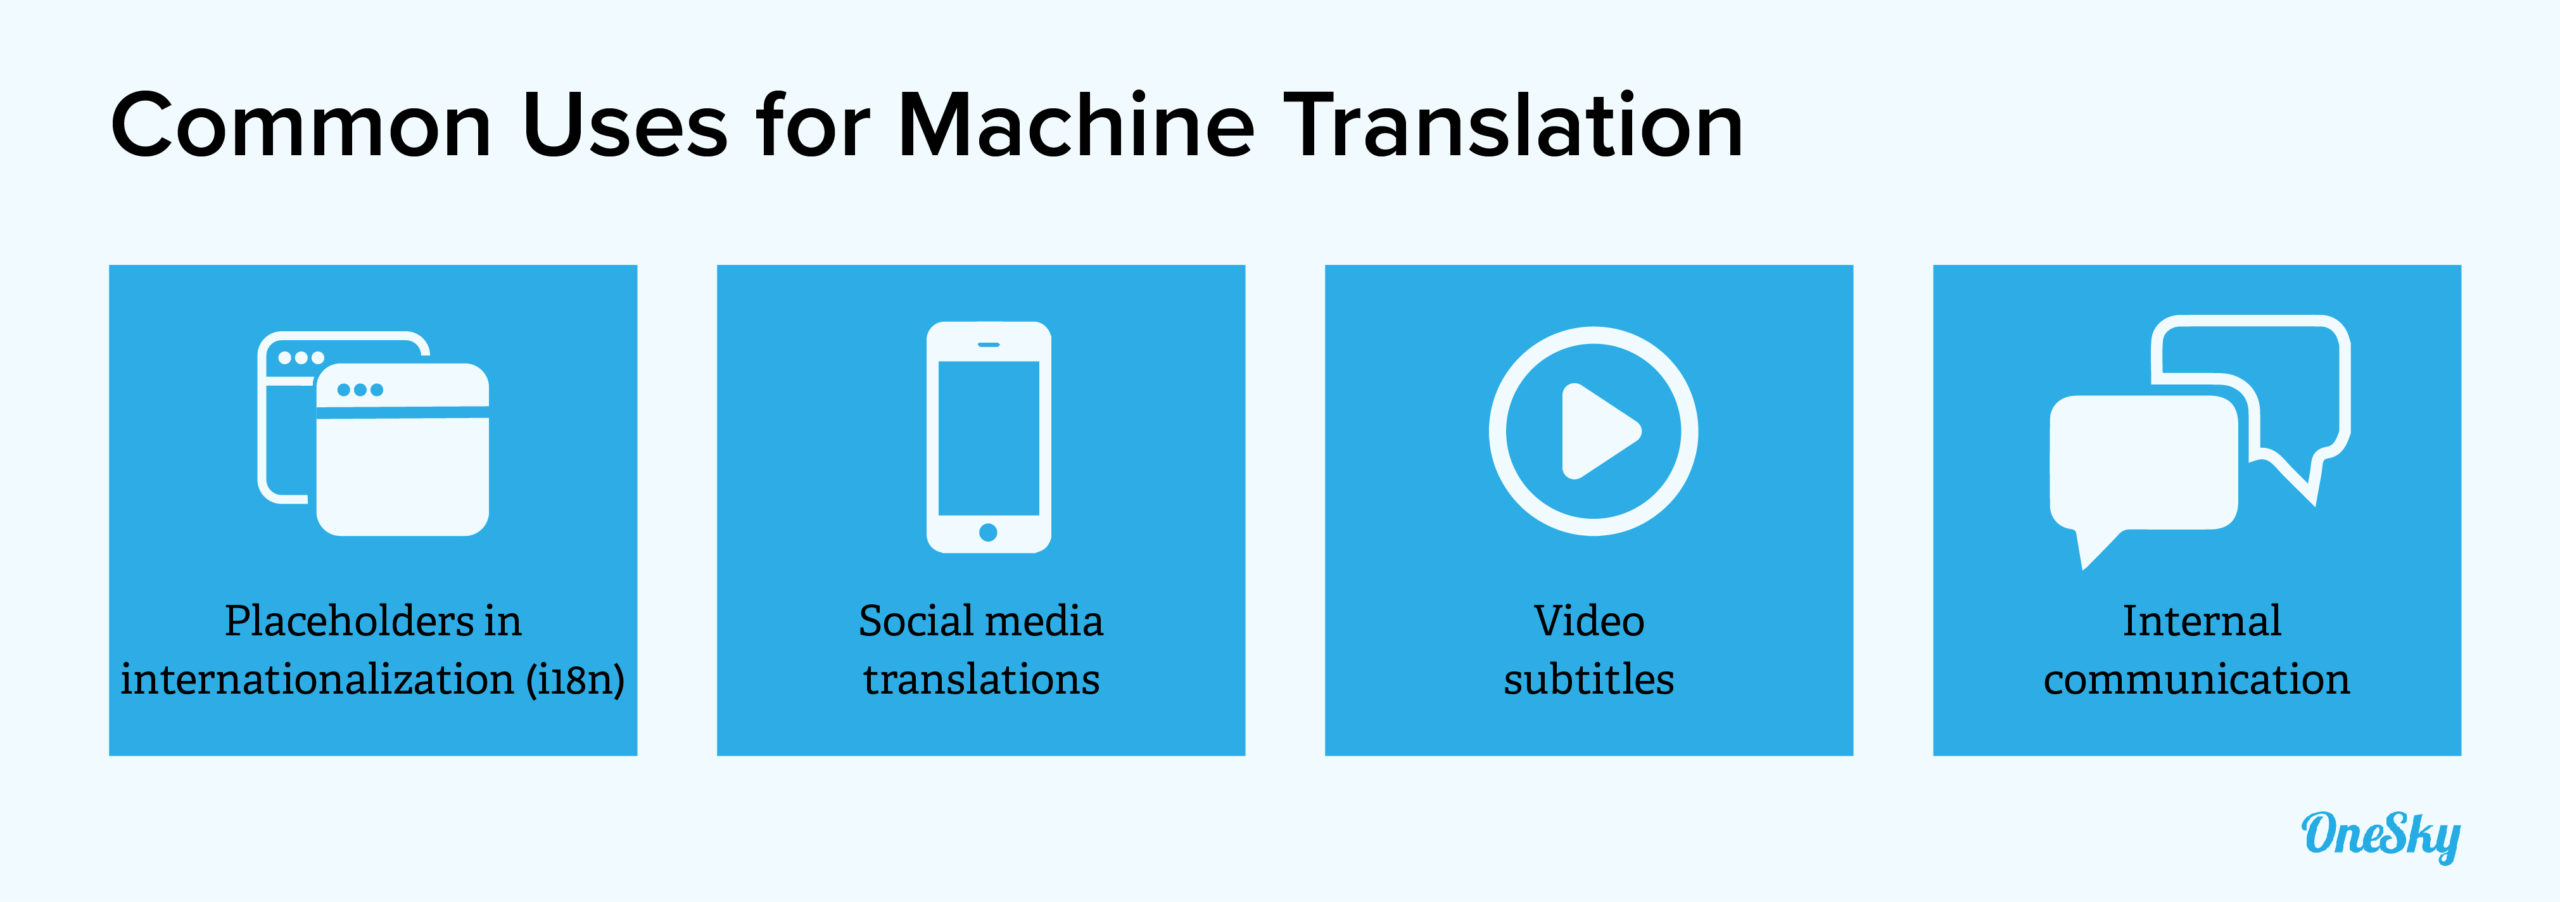 common uses for machine translation